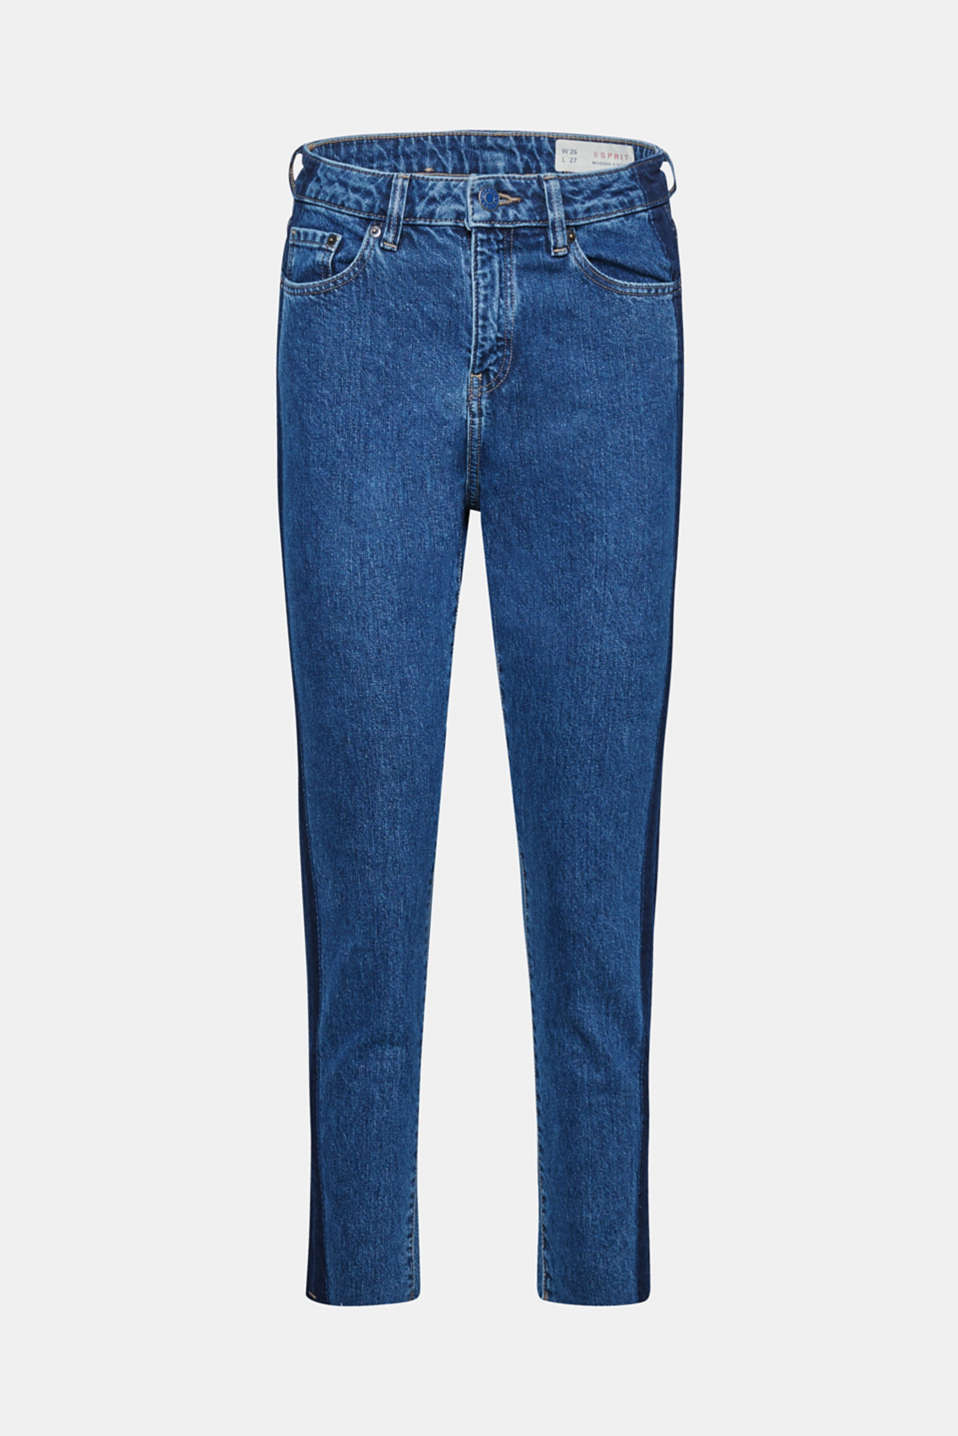 The high-rise waist design and the cropped leg length, enhanced by darker tuxedo stripes on the side, give these jeans in stable denim a trendy silhouette!